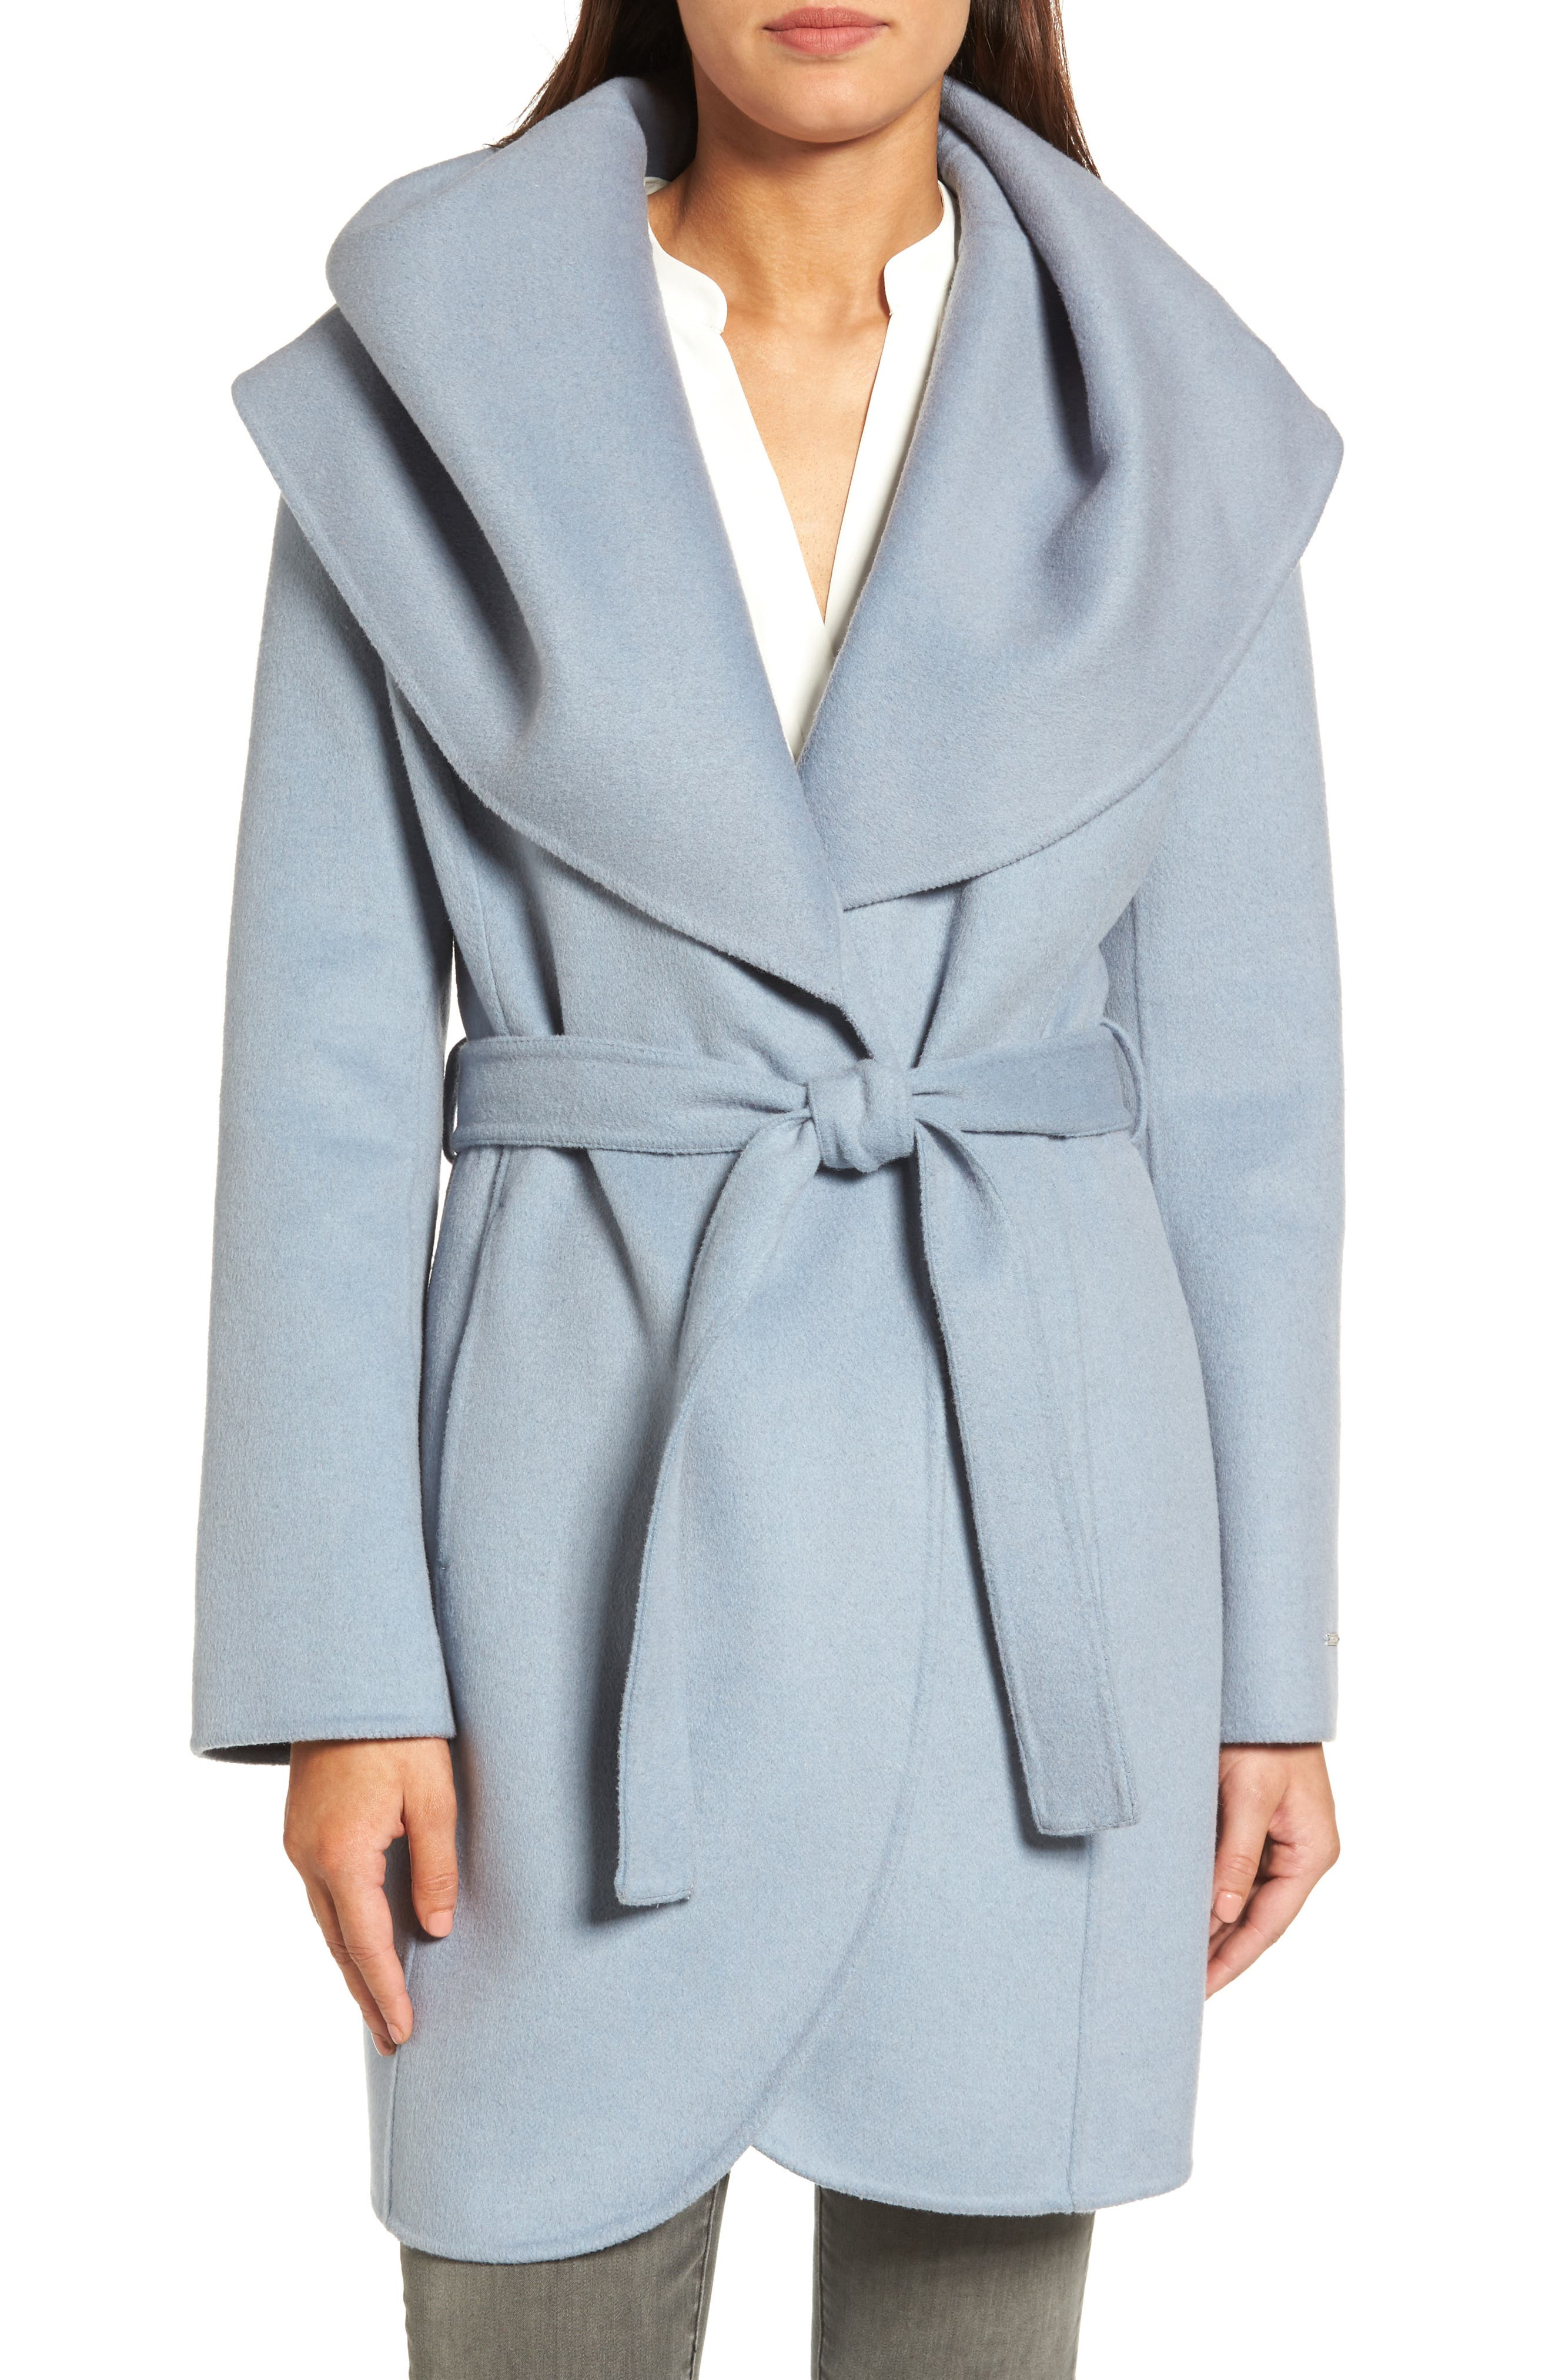 Main Image - Tahari Marla Double Face Wool Blend Wrap Coat